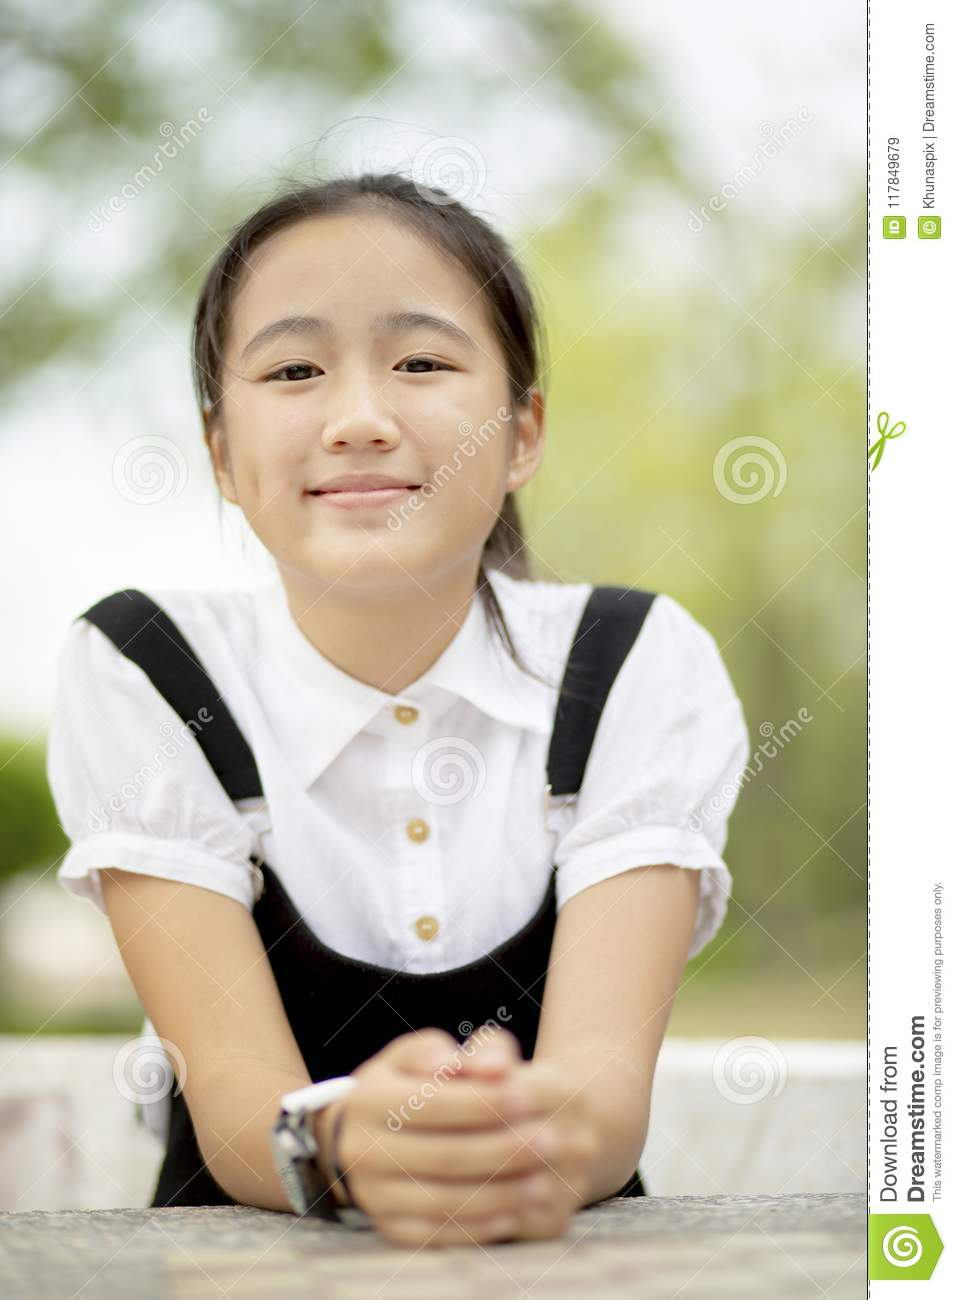 Close up head shop of asian teenager toothy smiling face outdoor